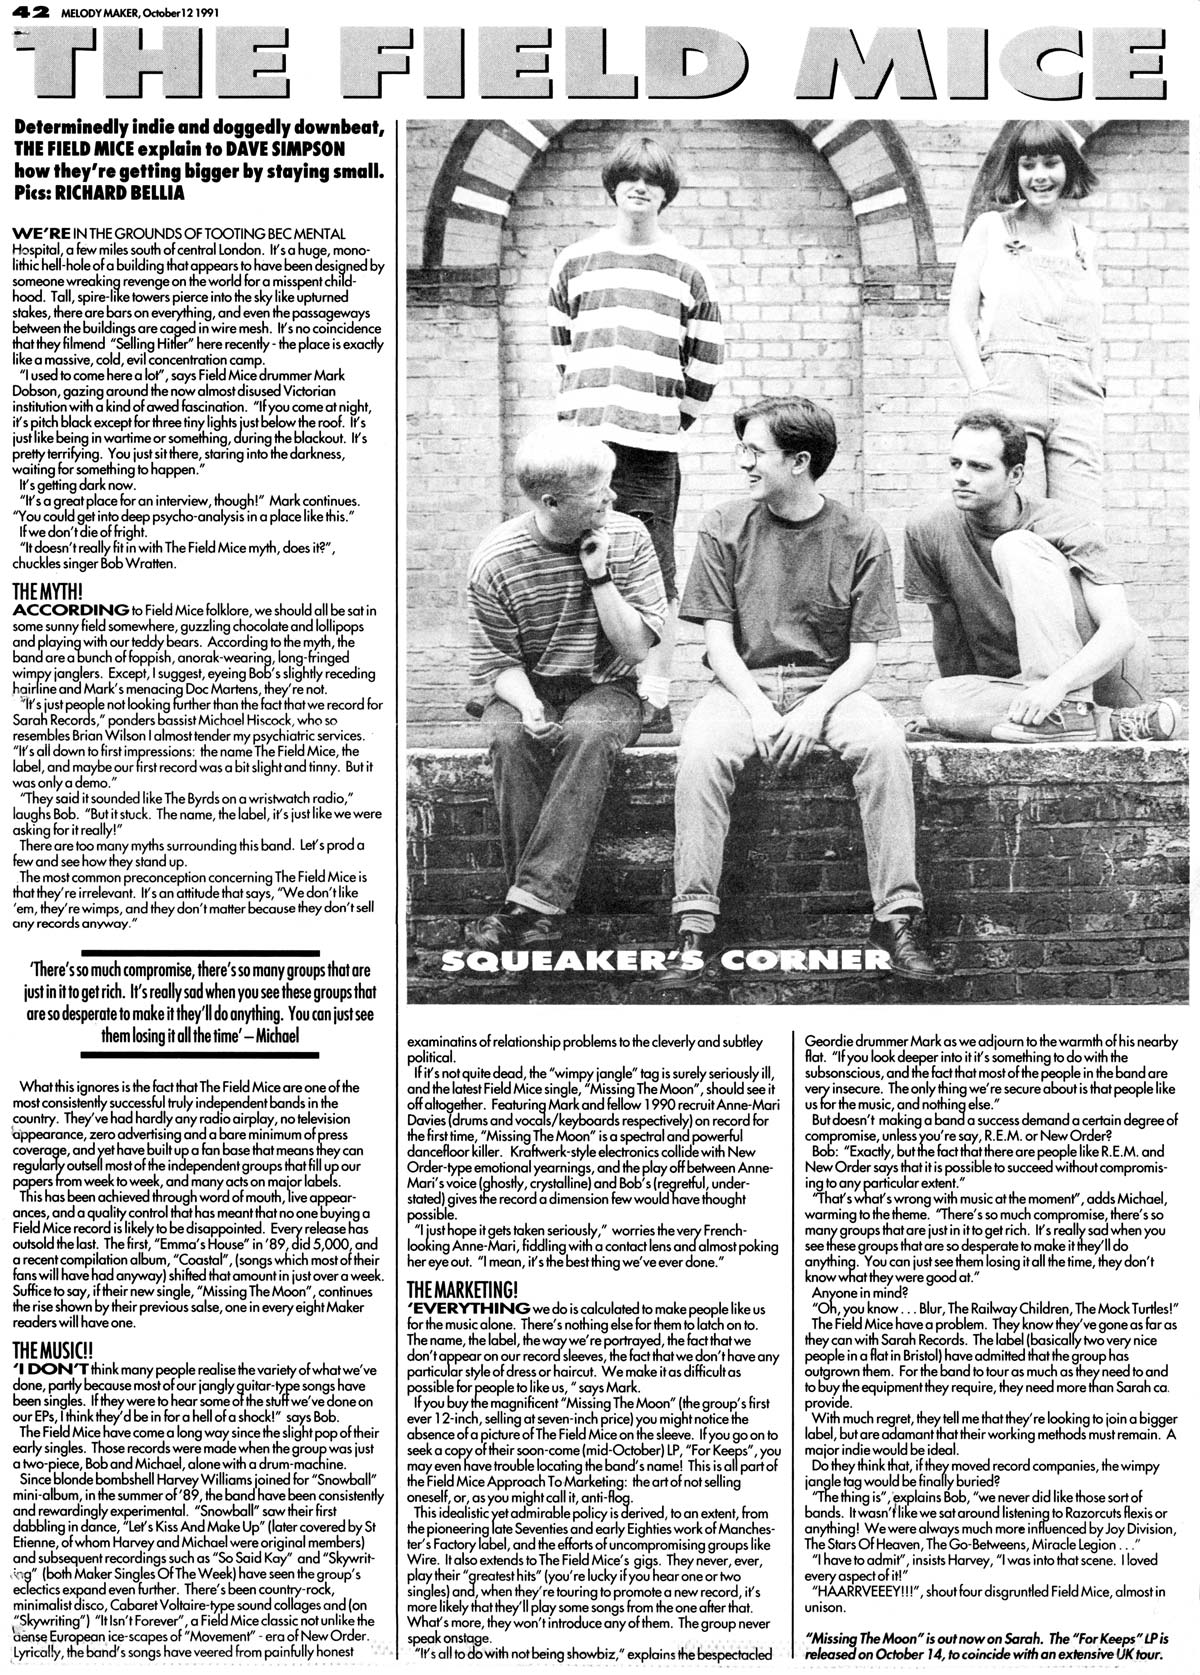 Field Mice article in Melody Maker